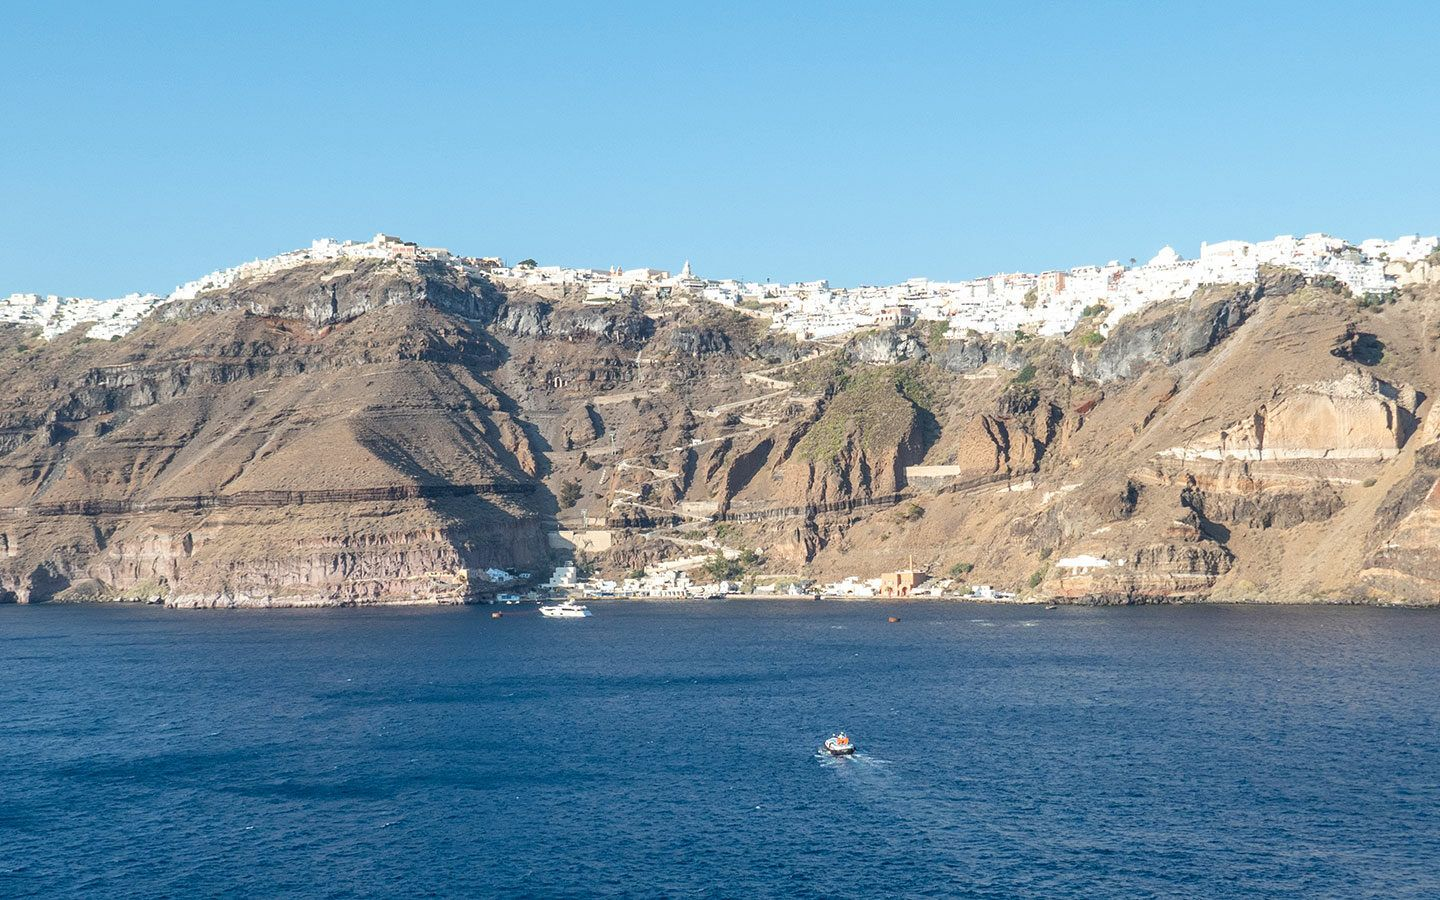 Fira Santorini as seen from the water